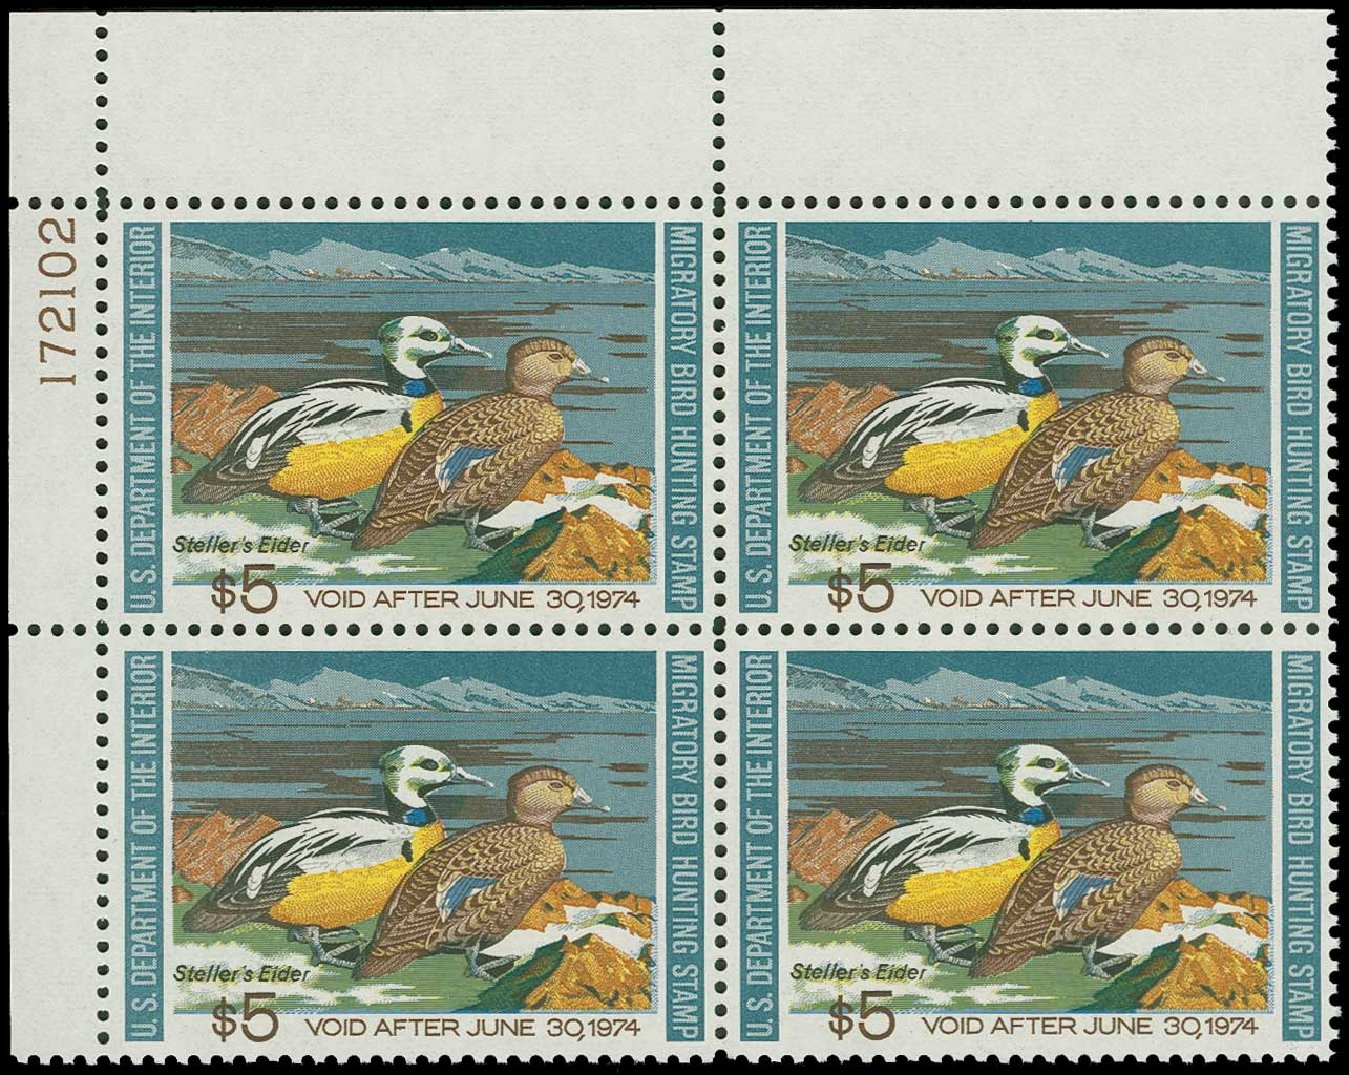 Price of US Stamps Scott Cat. RW40 - US$5.00 1973 Federal Duck Hunting. H.R. Harmer, Jun 2015, Sale 3007, Lot 3605